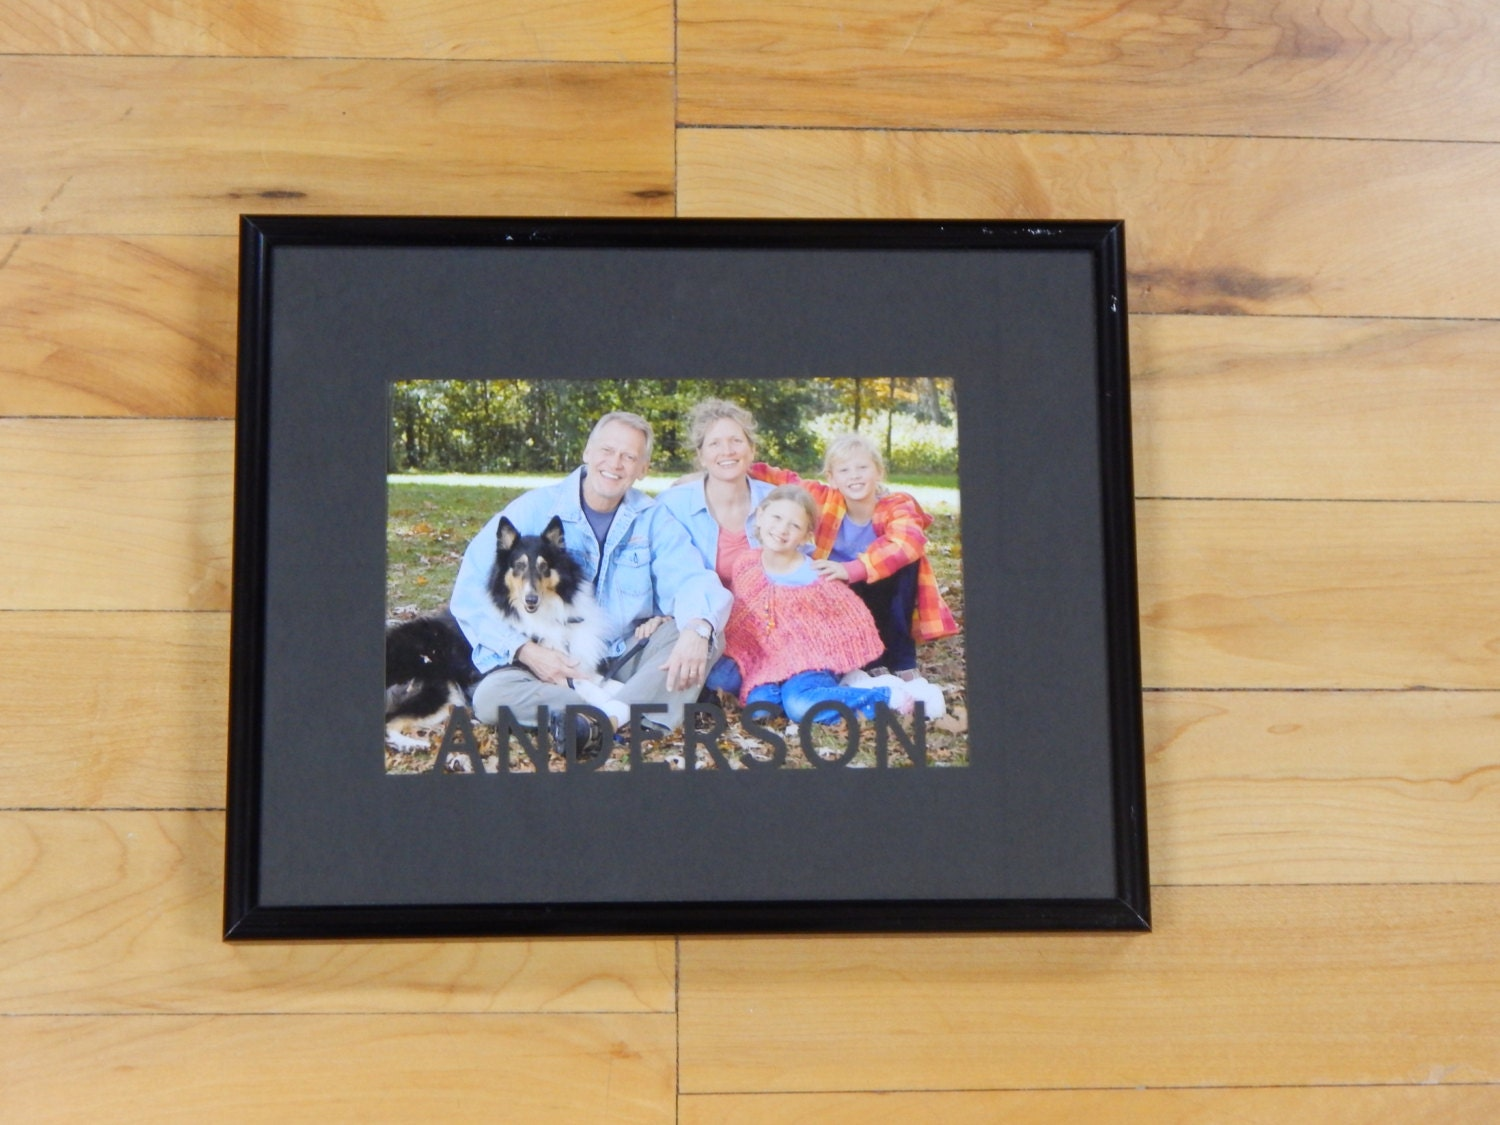 custom personalized family name picture mat and frame. Black Bedroom Furniture Sets. Home Design Ideas